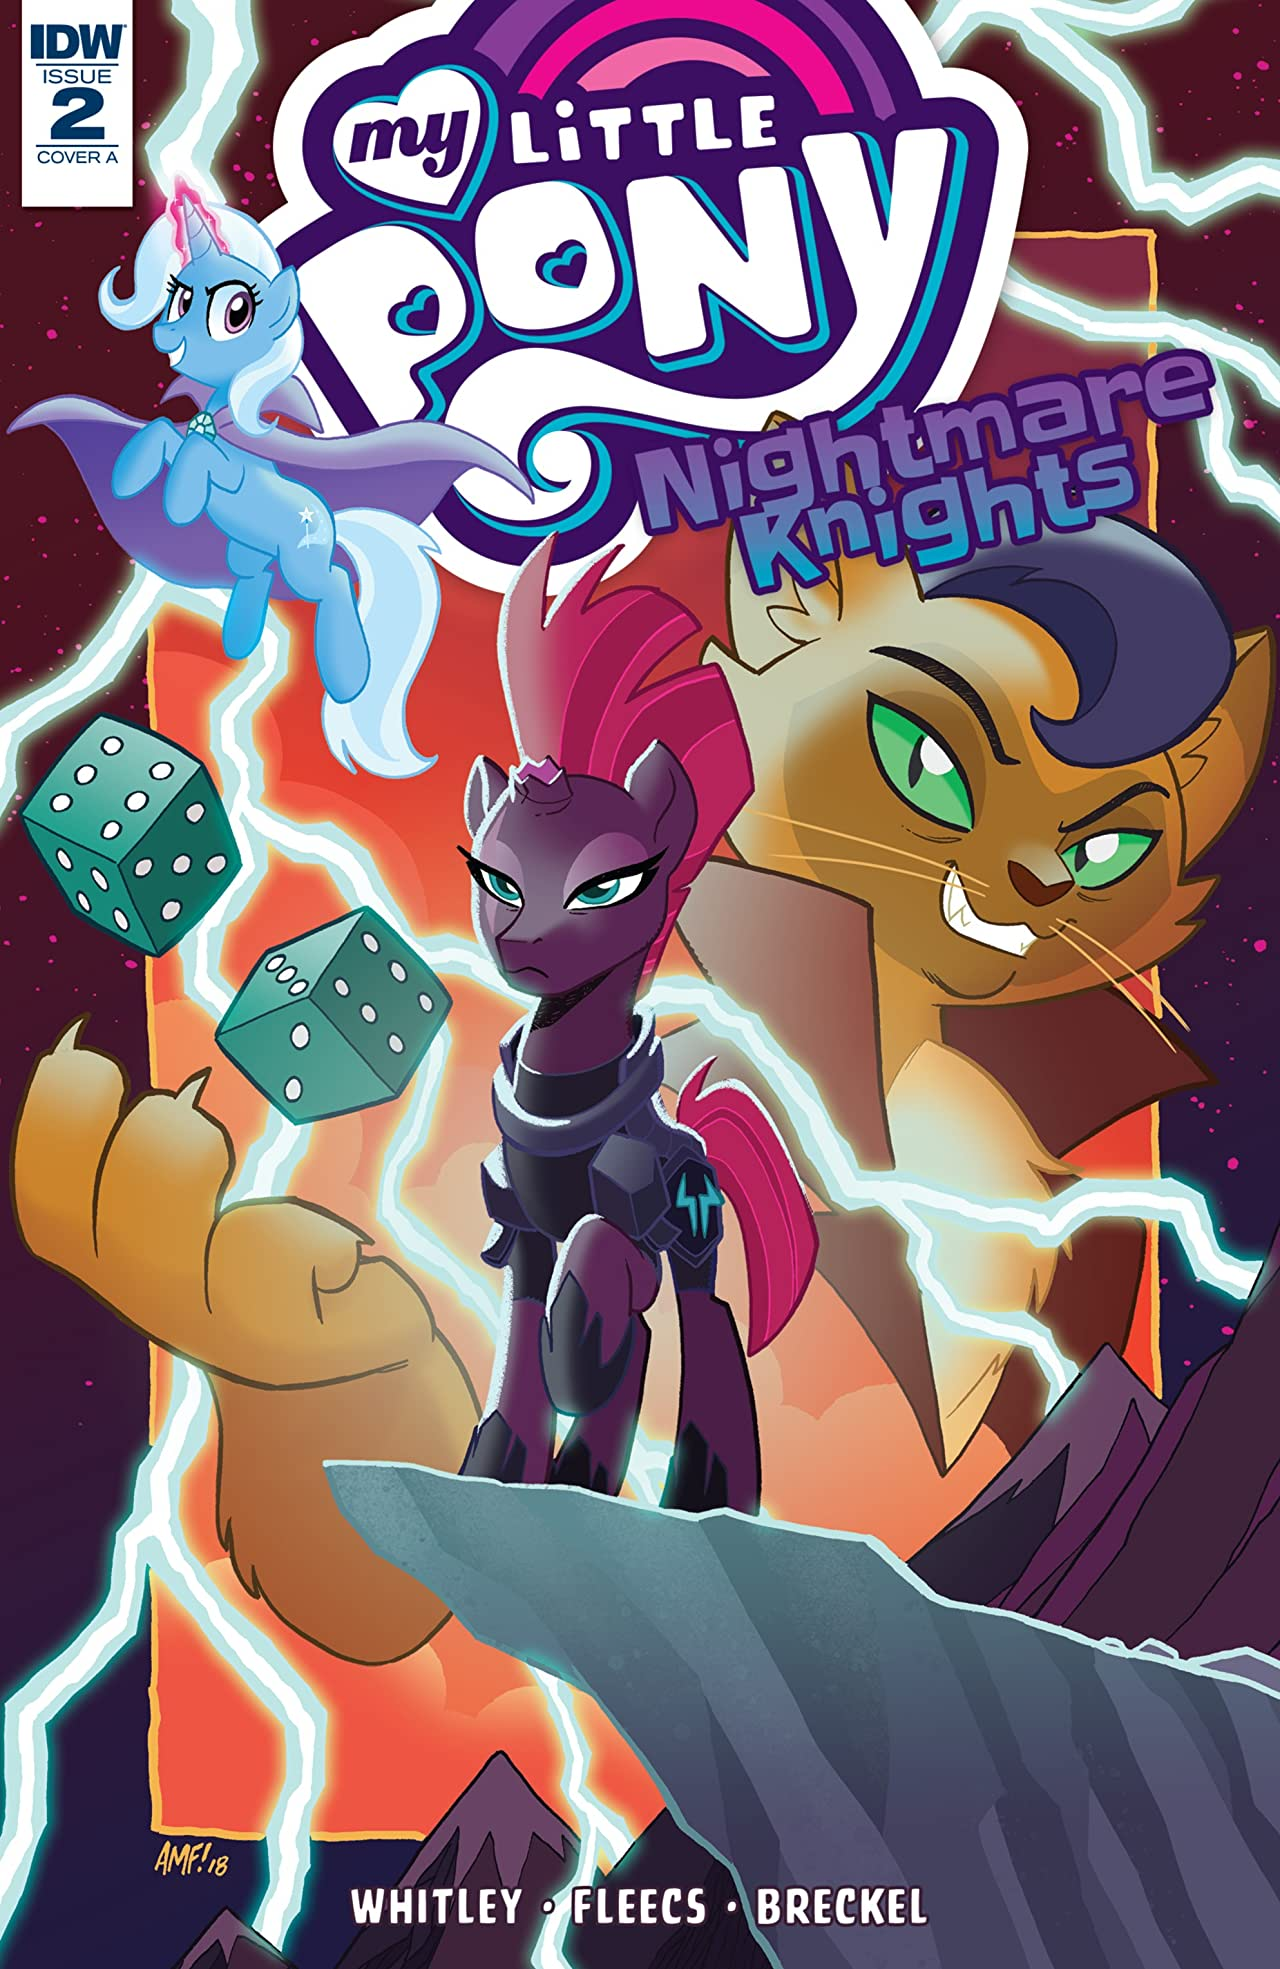 My Little Pony: Nightmare Knights #2